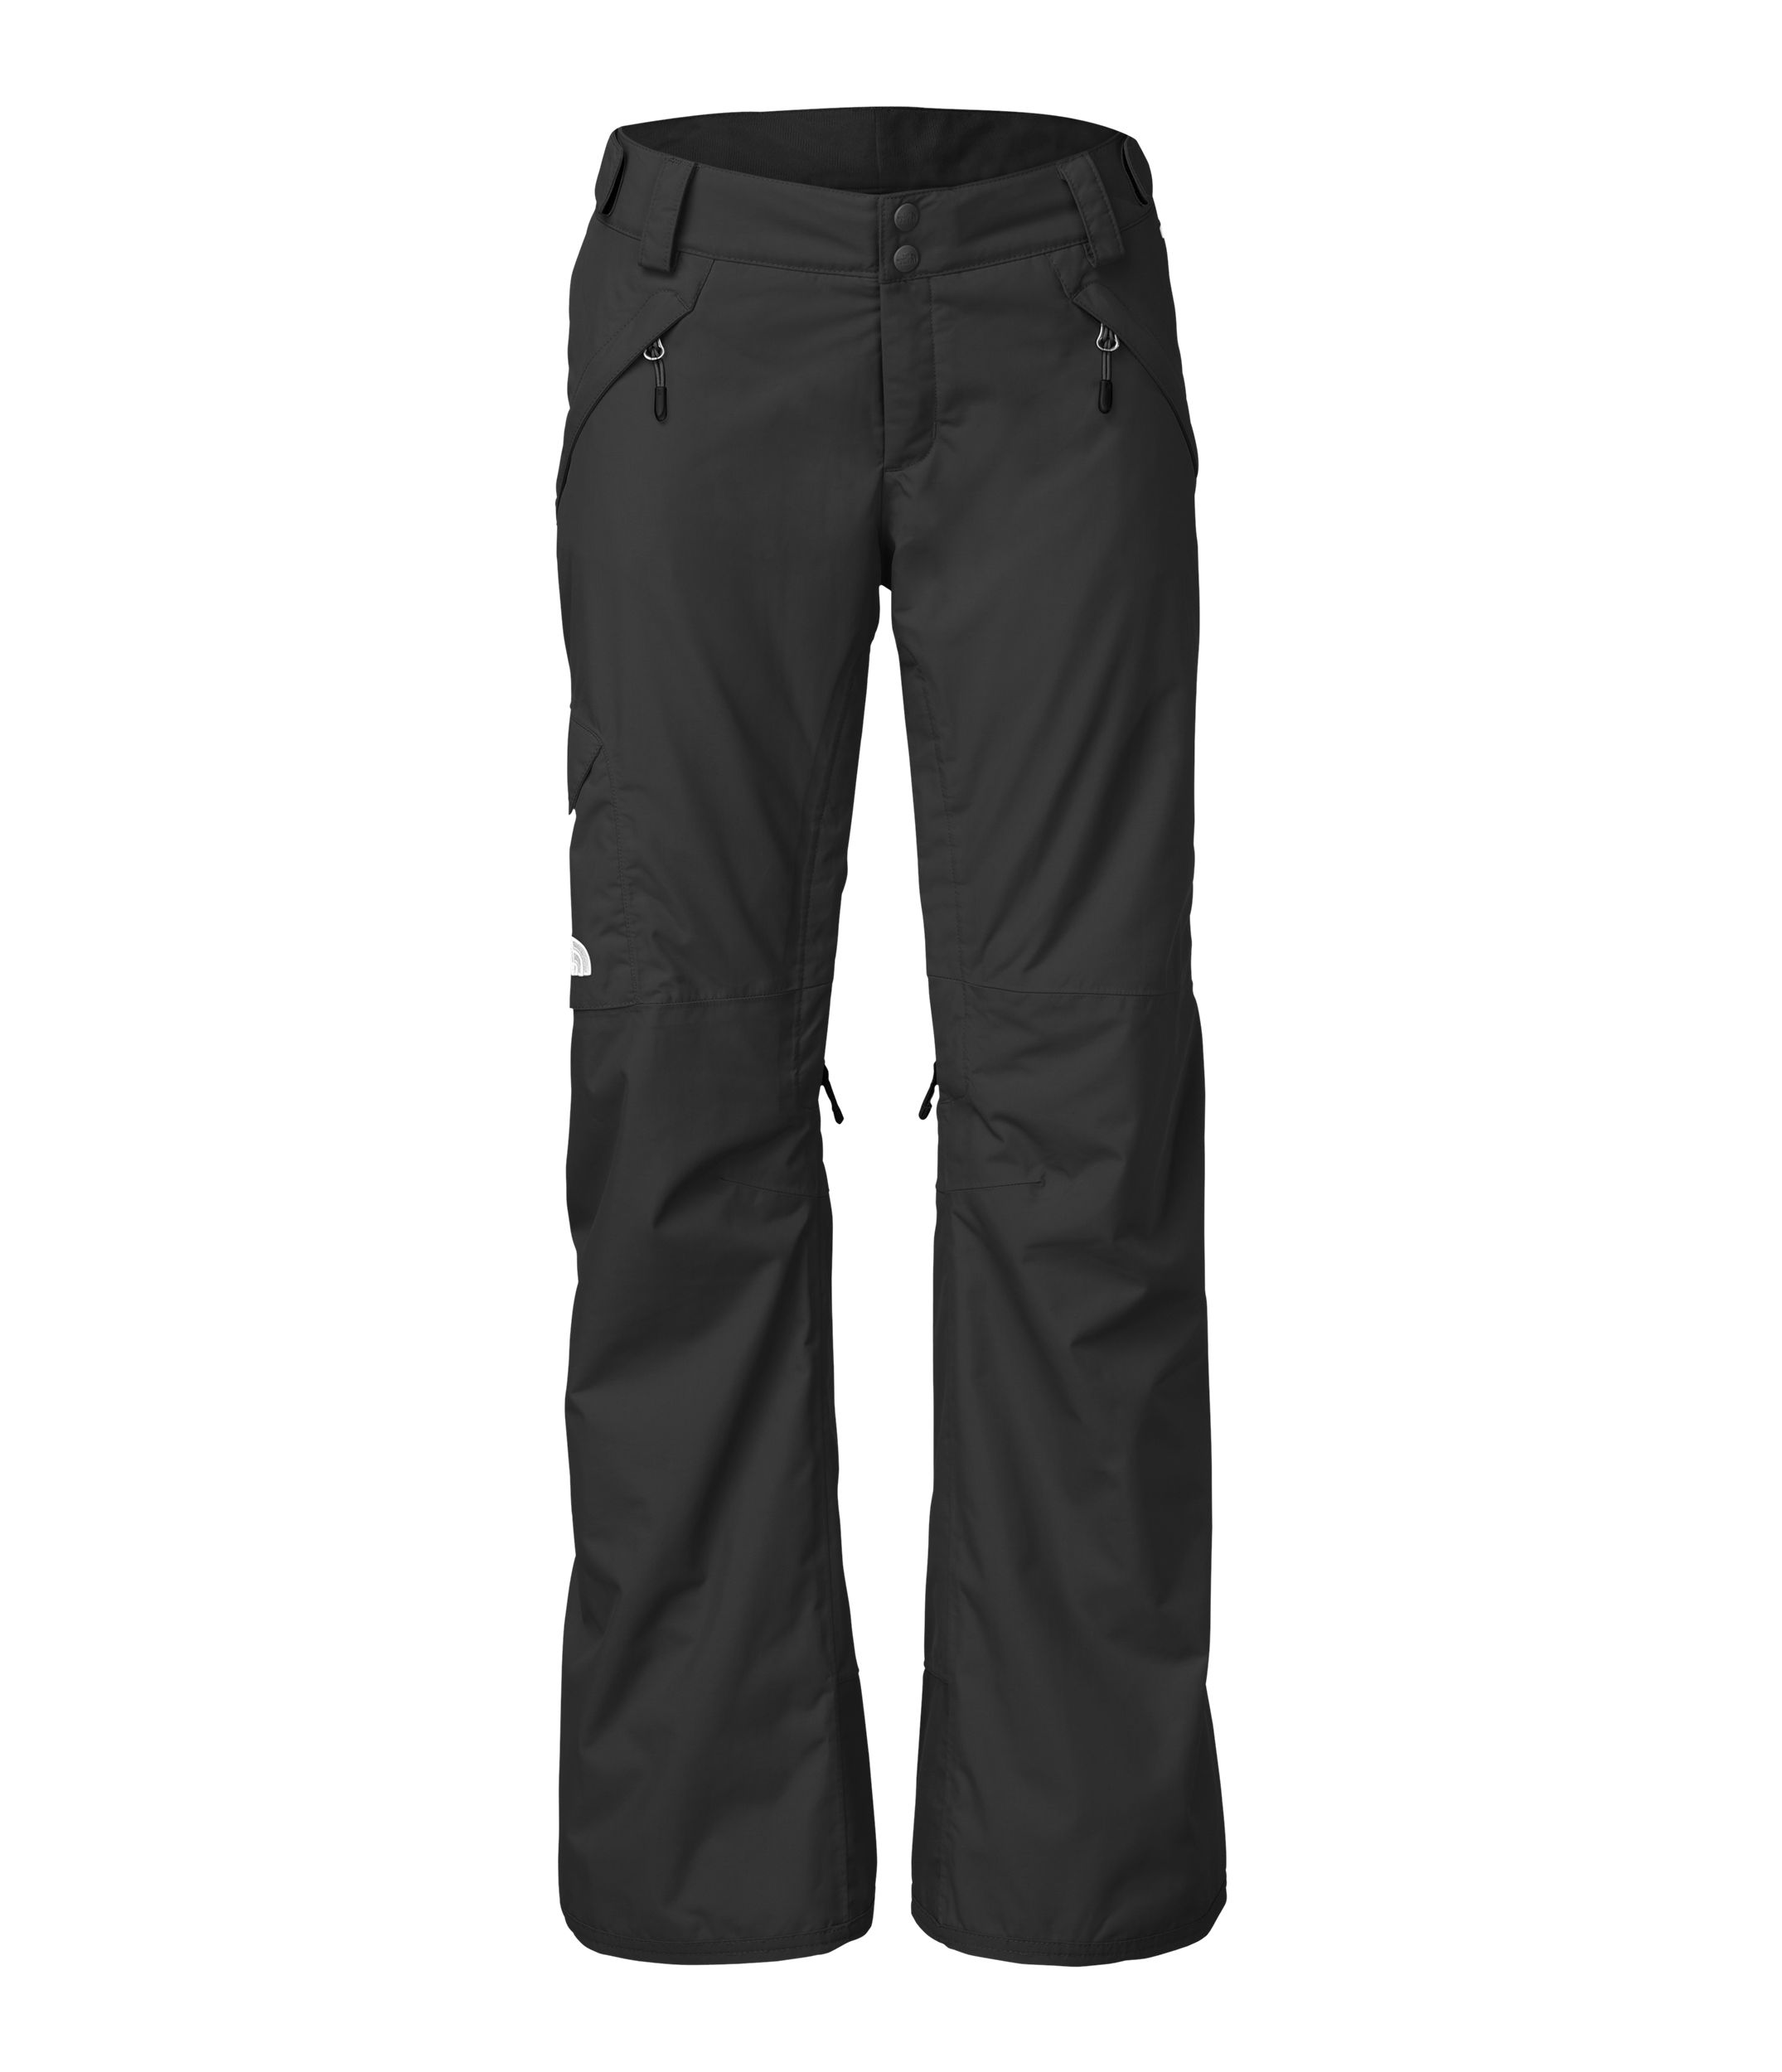 north face womens ski pants photo - 1